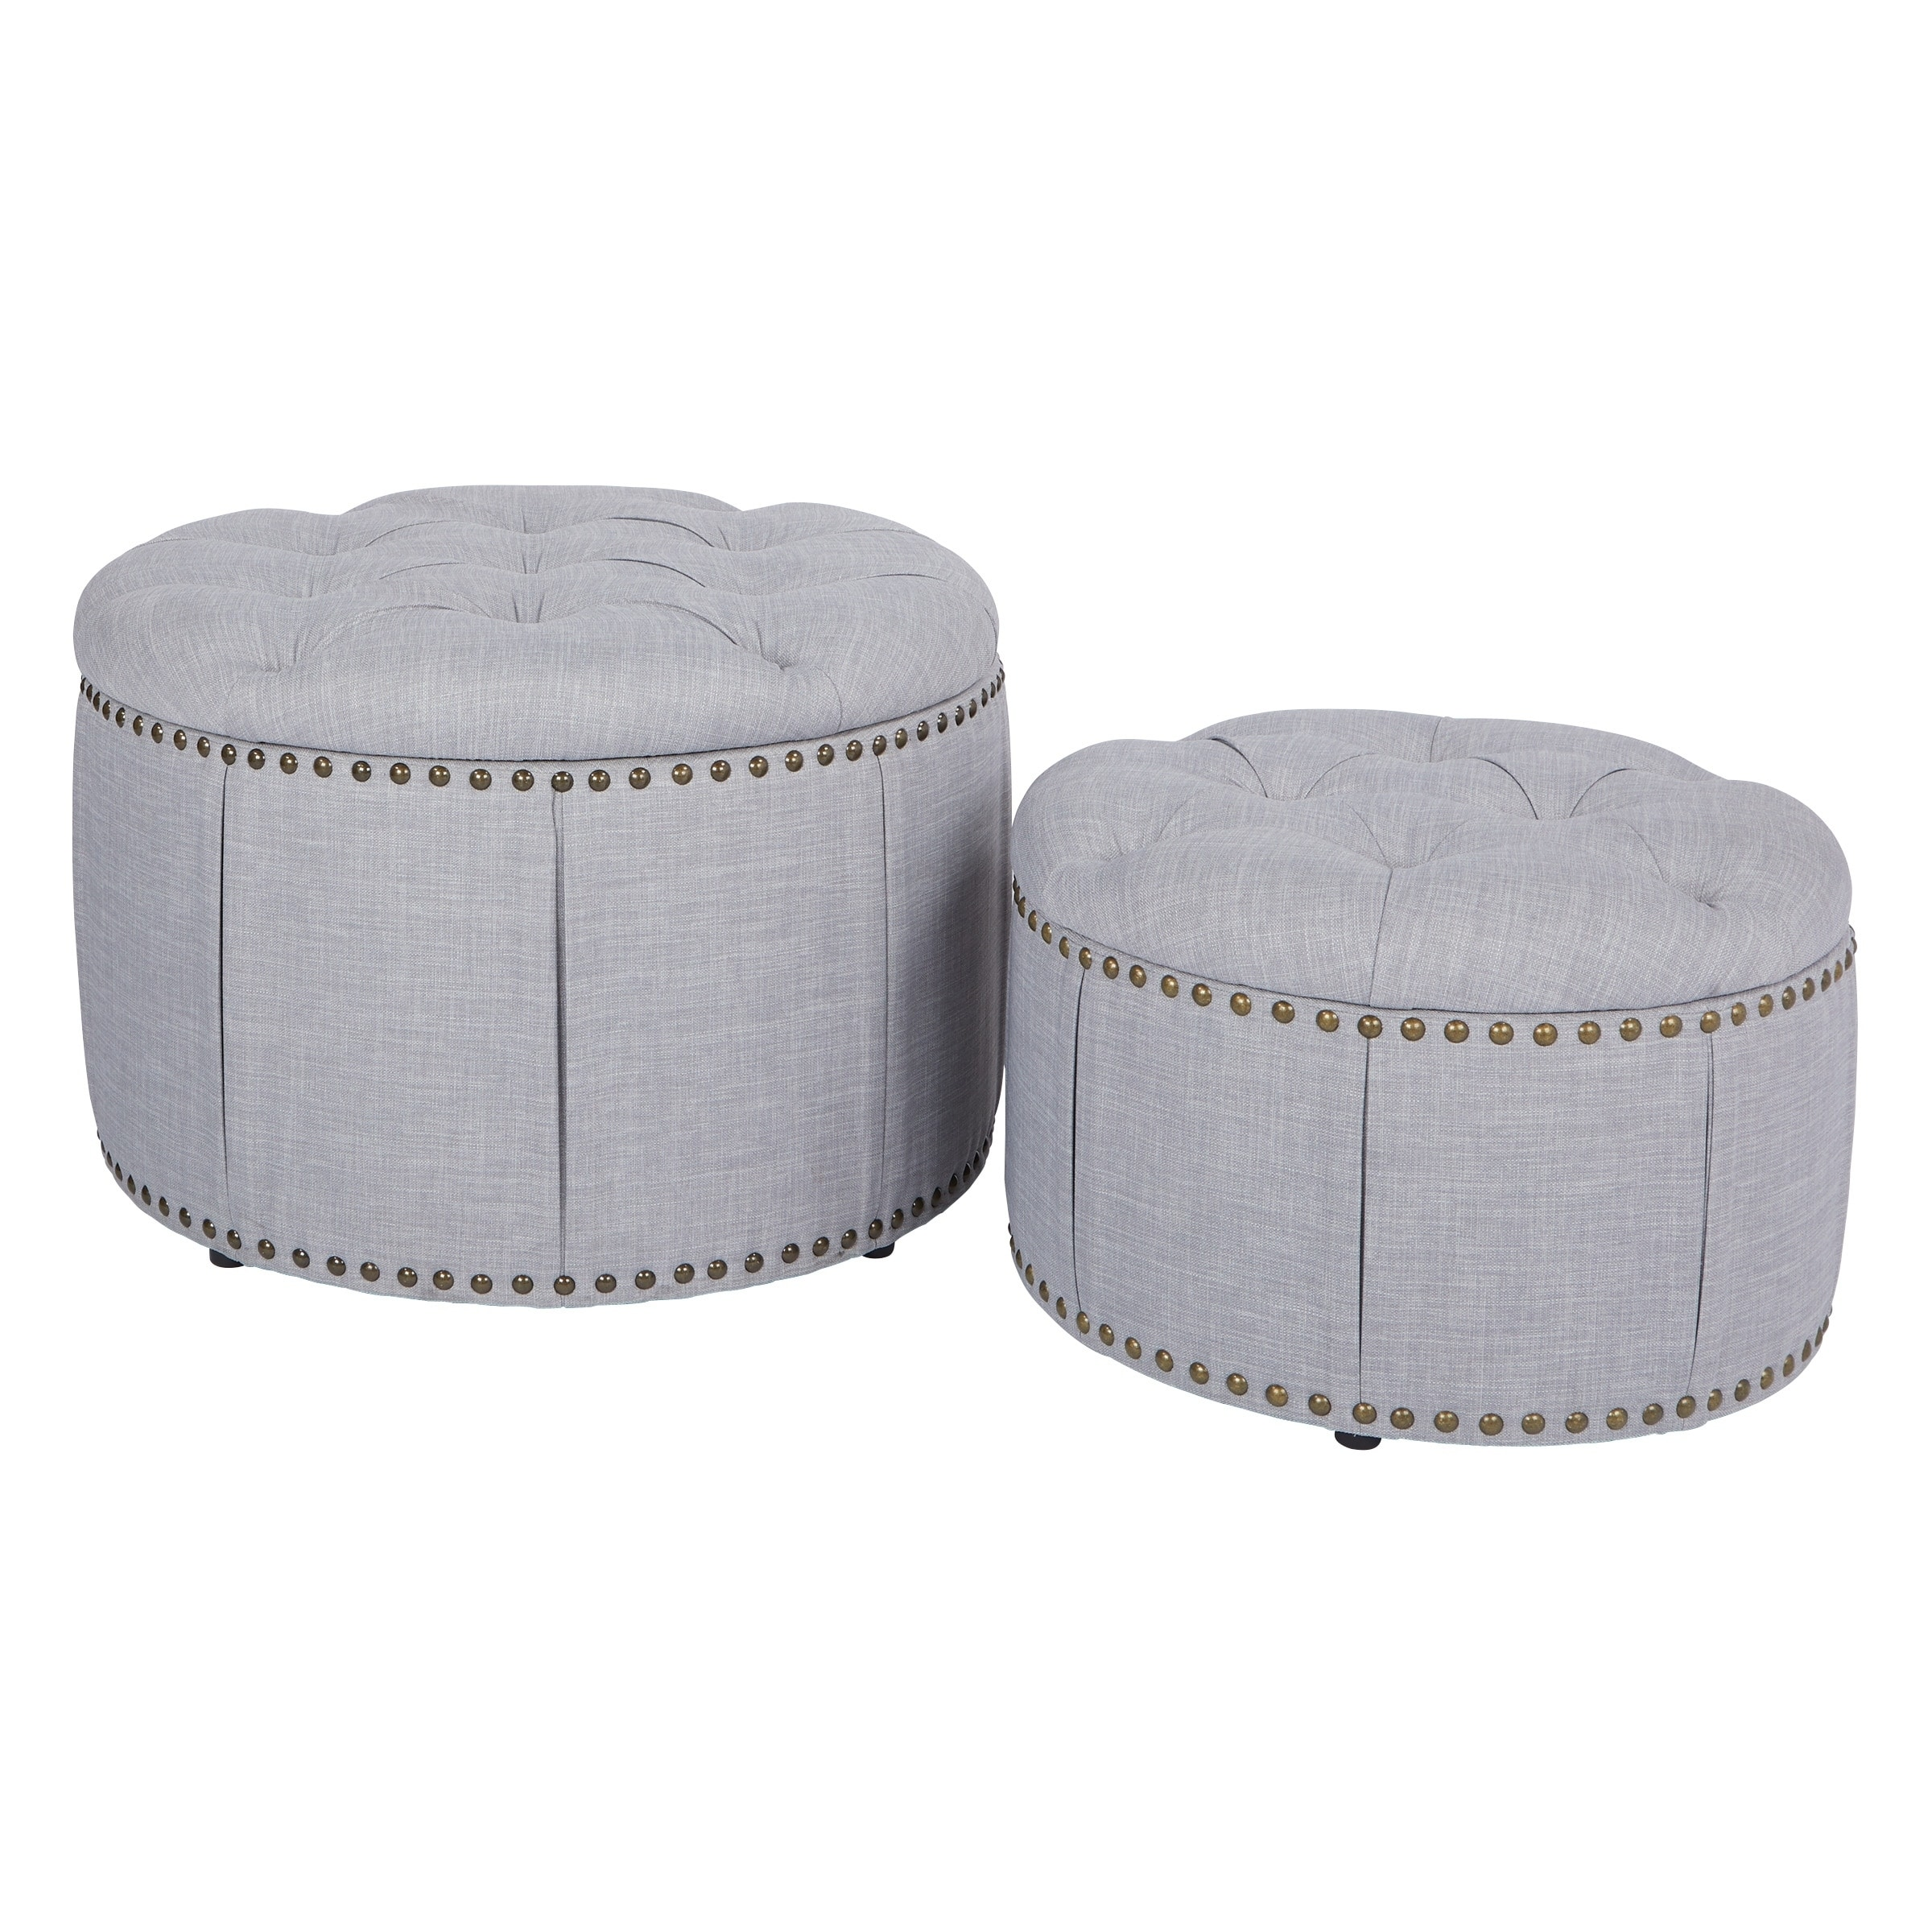 Fantastic Osp Home Furnishings Elsie Skirted Storage Ottoman Set With Antique Bronze Nailheads Theyellowbook Wood Chair Design Ideas Theyellowbookinfo